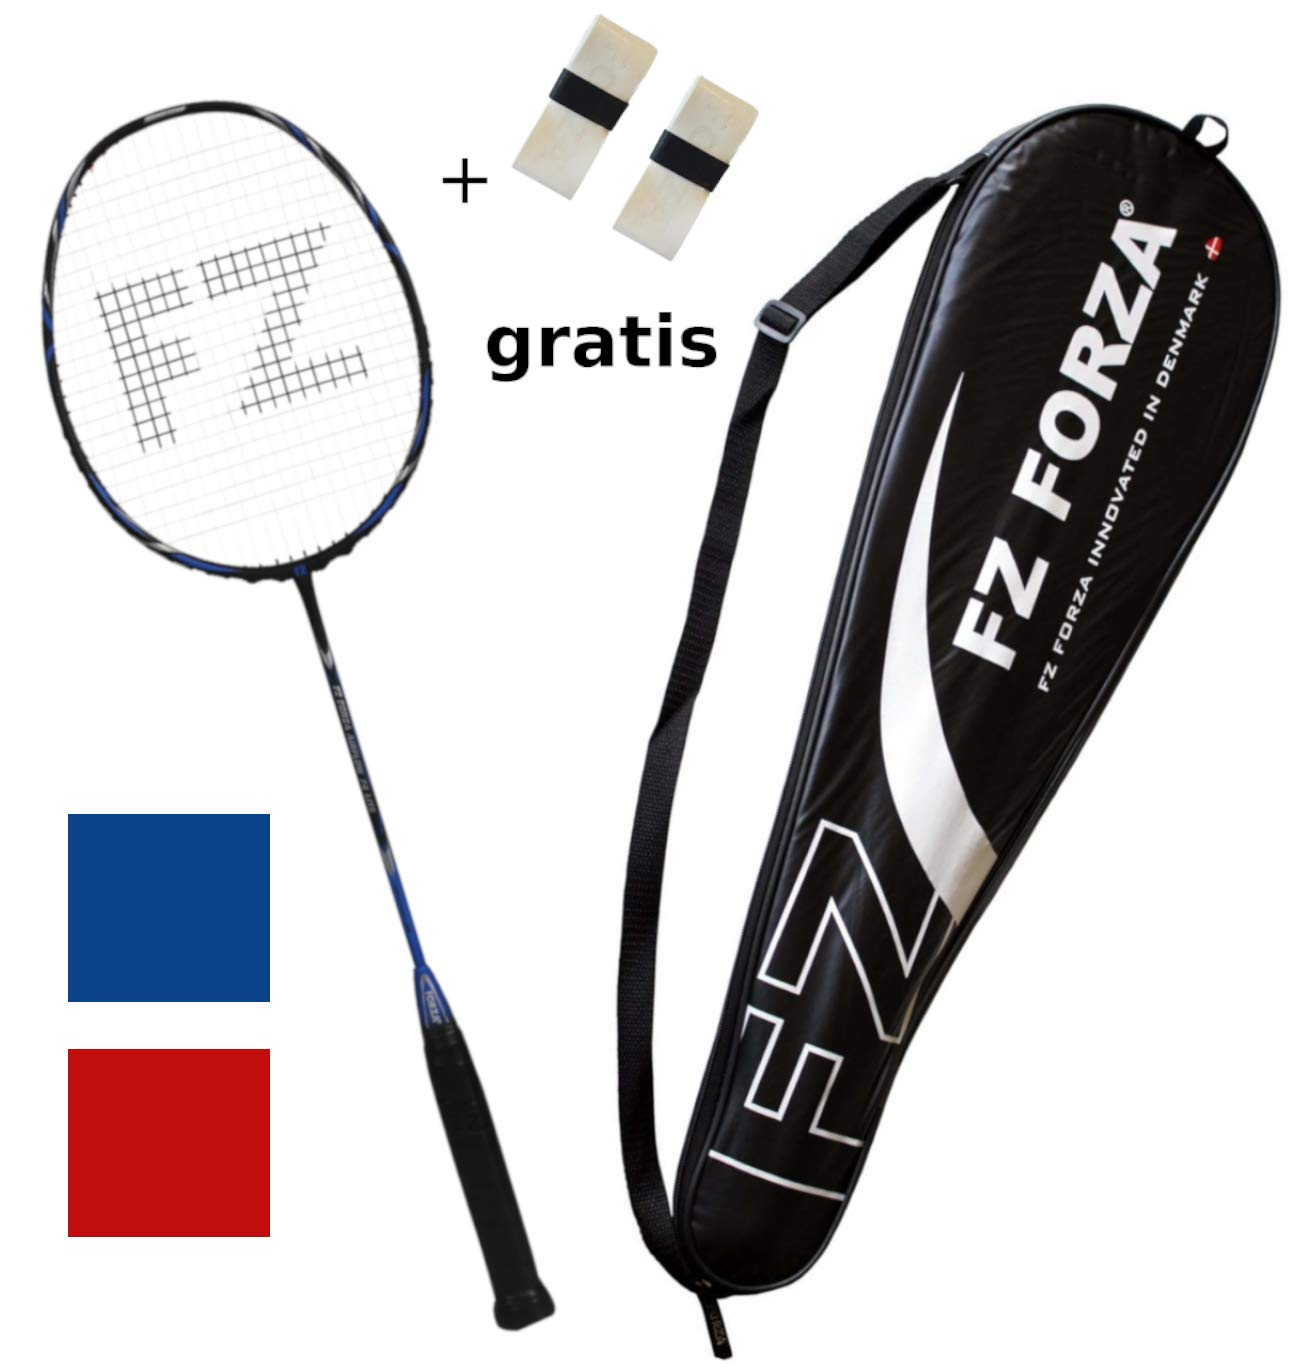 FZ FORZA - Badminton racket Airflow 74 Lite - very light full graphite  racquet for great control - strung - blue + 2 overgrips for free + fullsize  ... dc7091841ce49